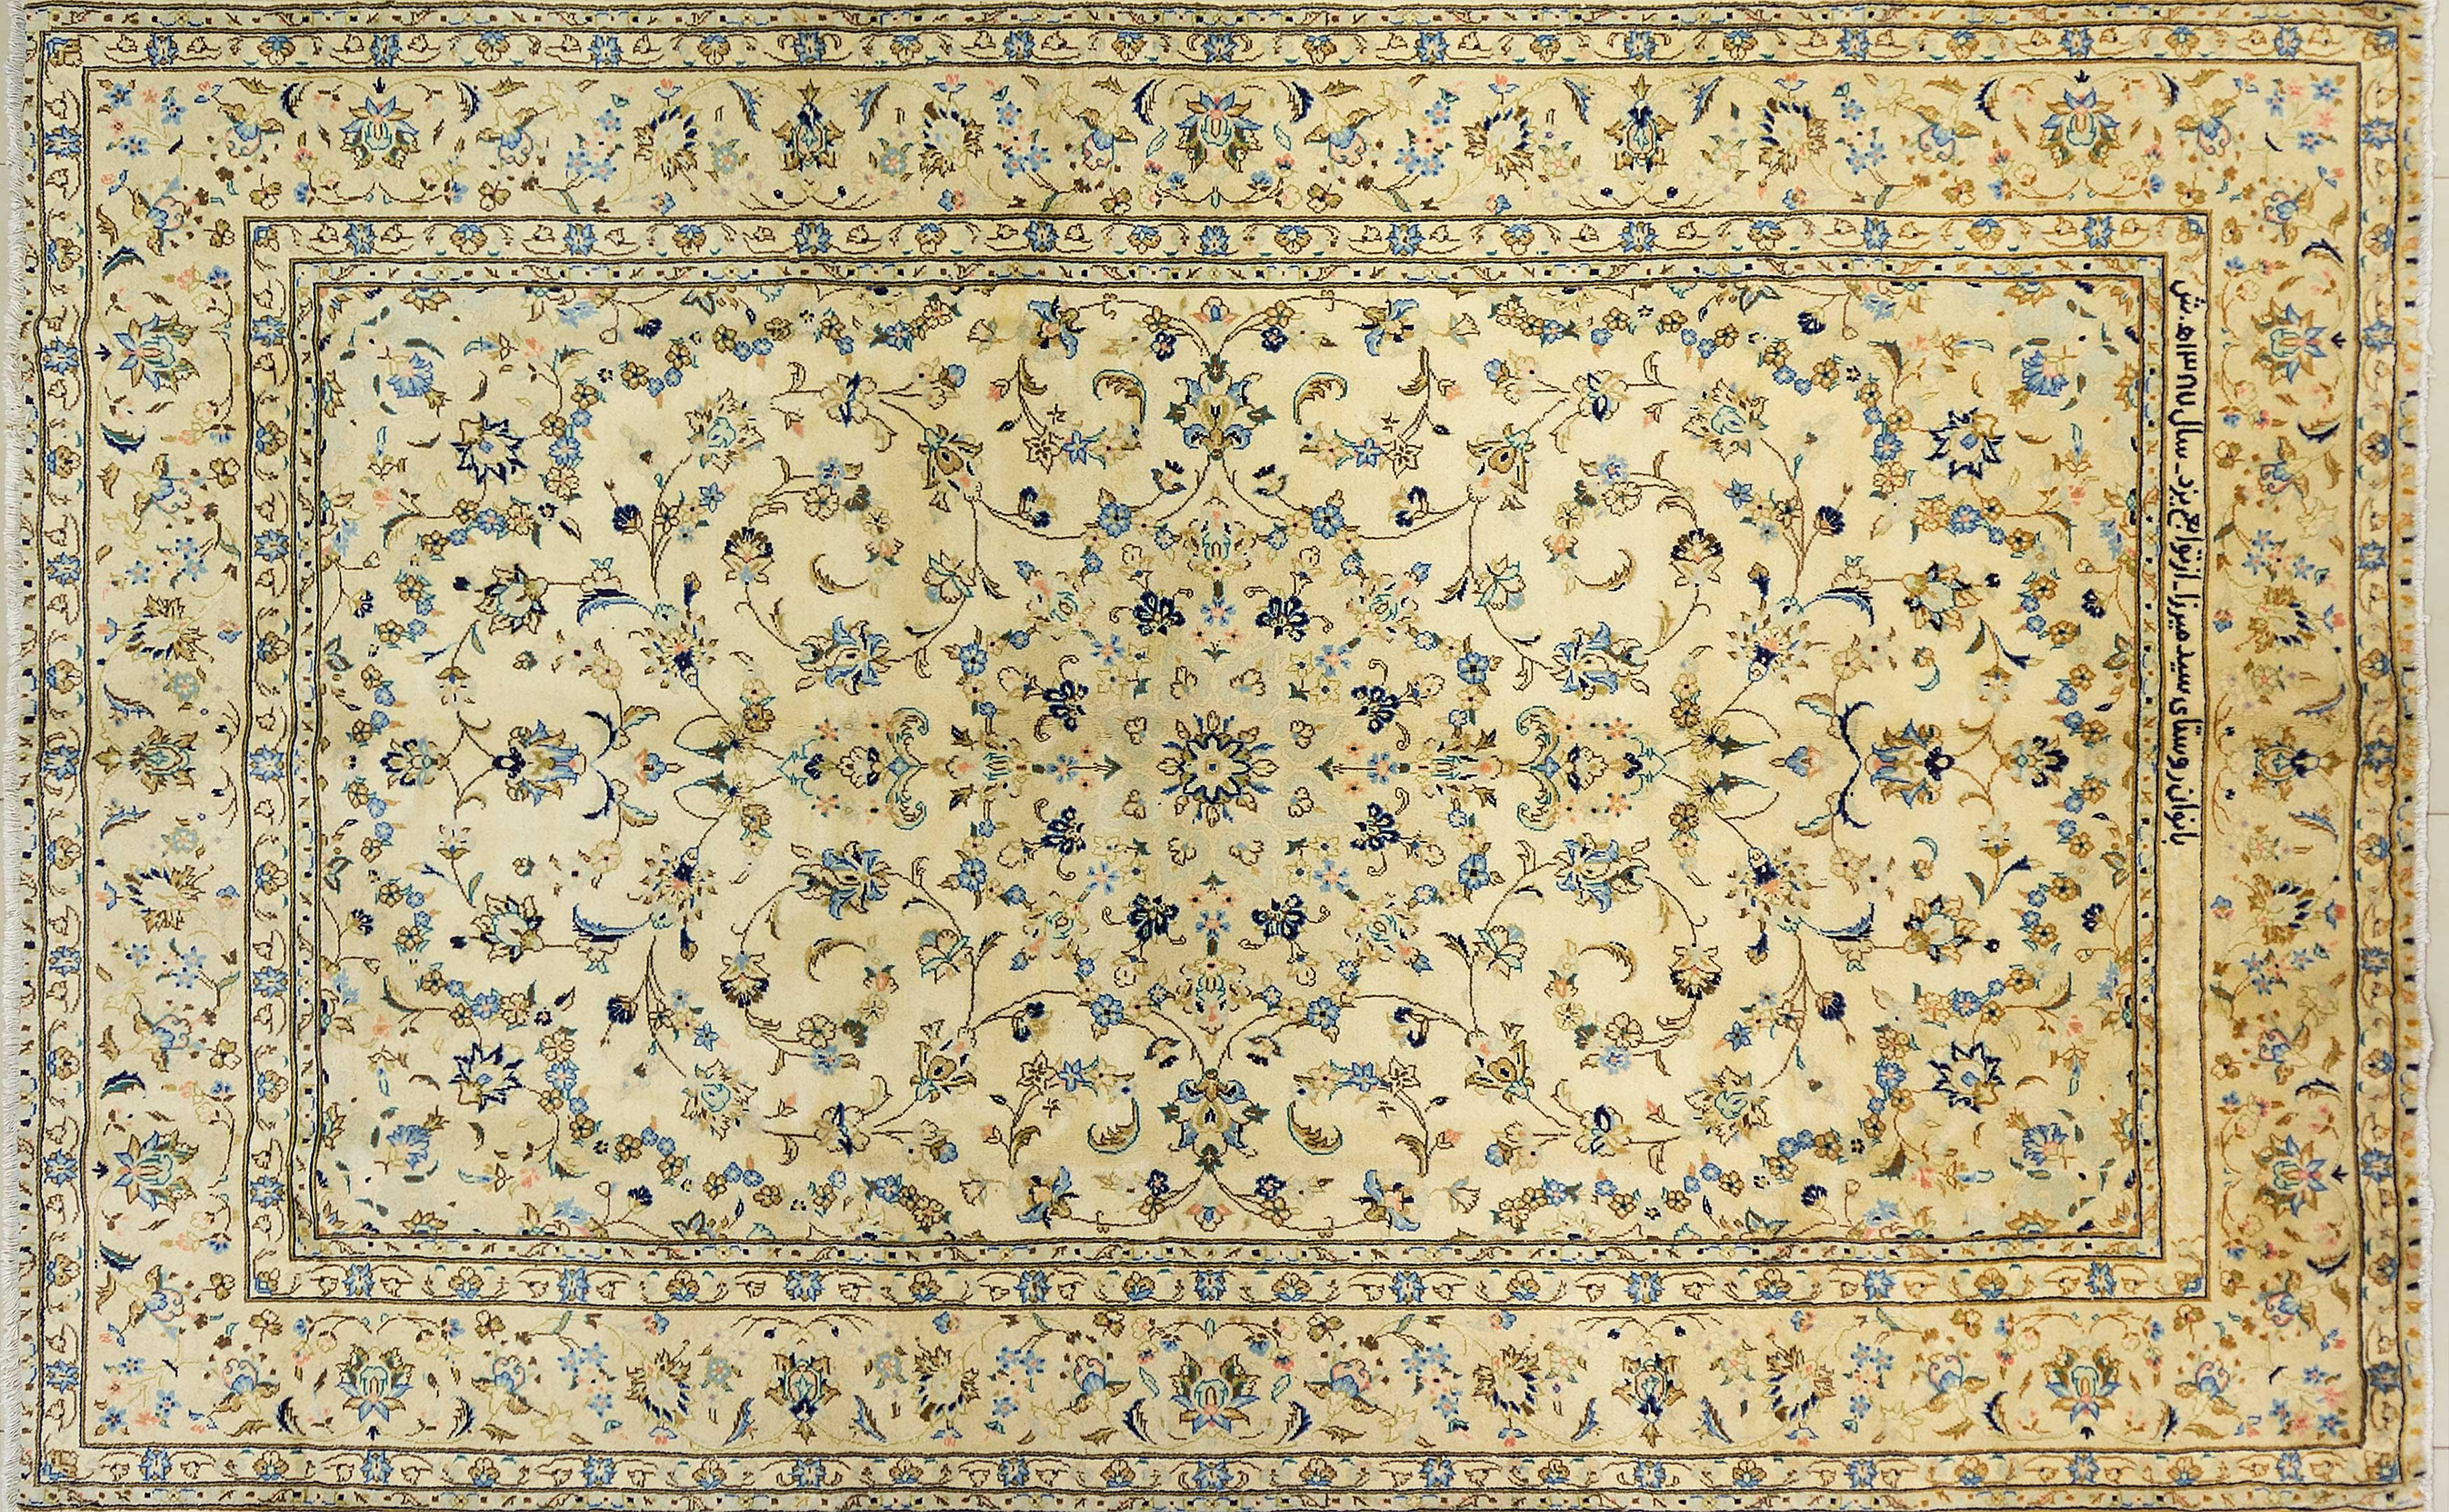 A Persian Hand Knotted Yazd Carpet, 305 x 195